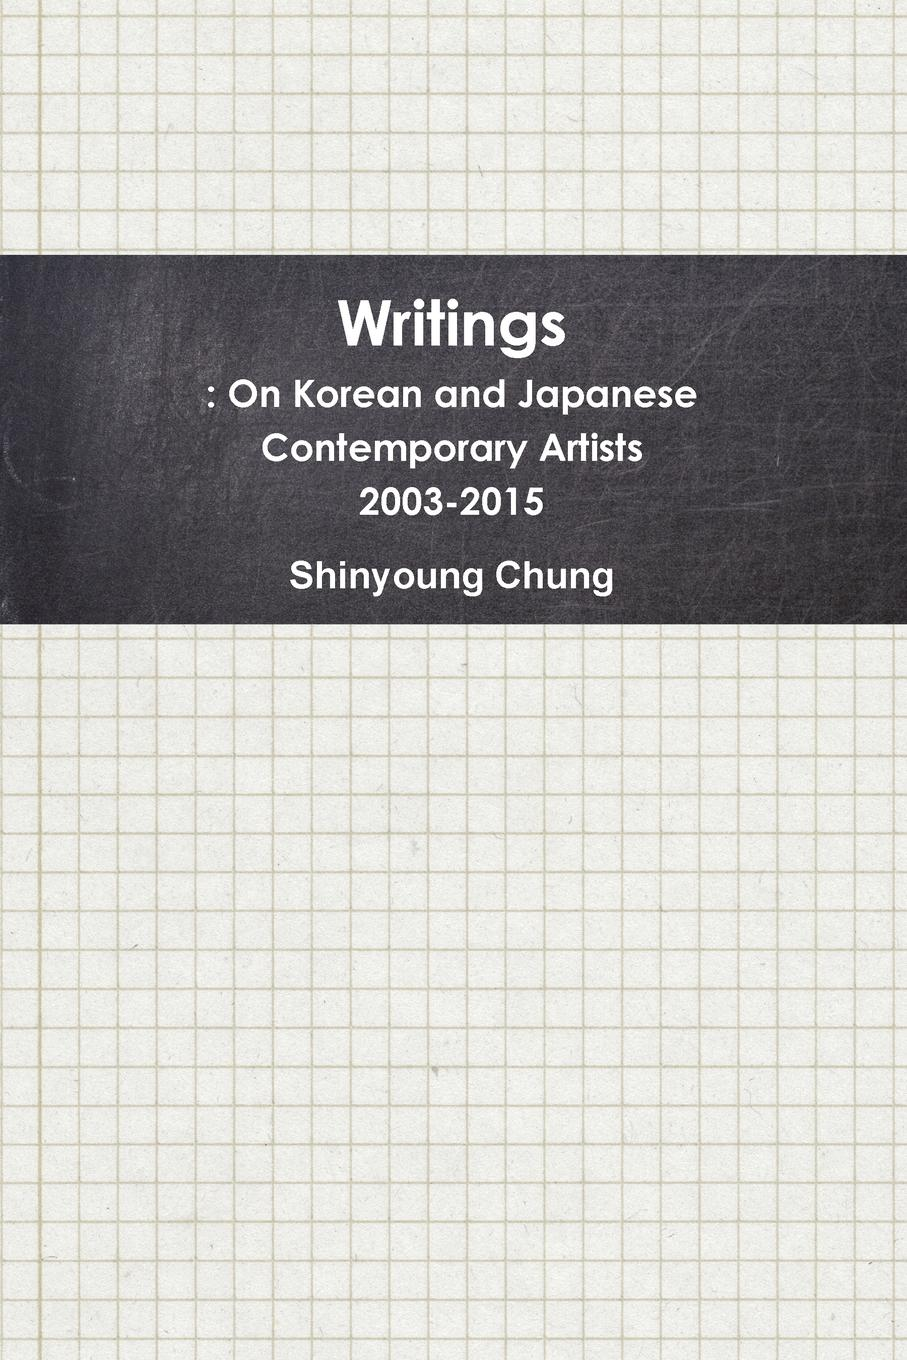 Shinyoung Chung Writings. On Korean and Japanese Contemporary Artists 2003-2015